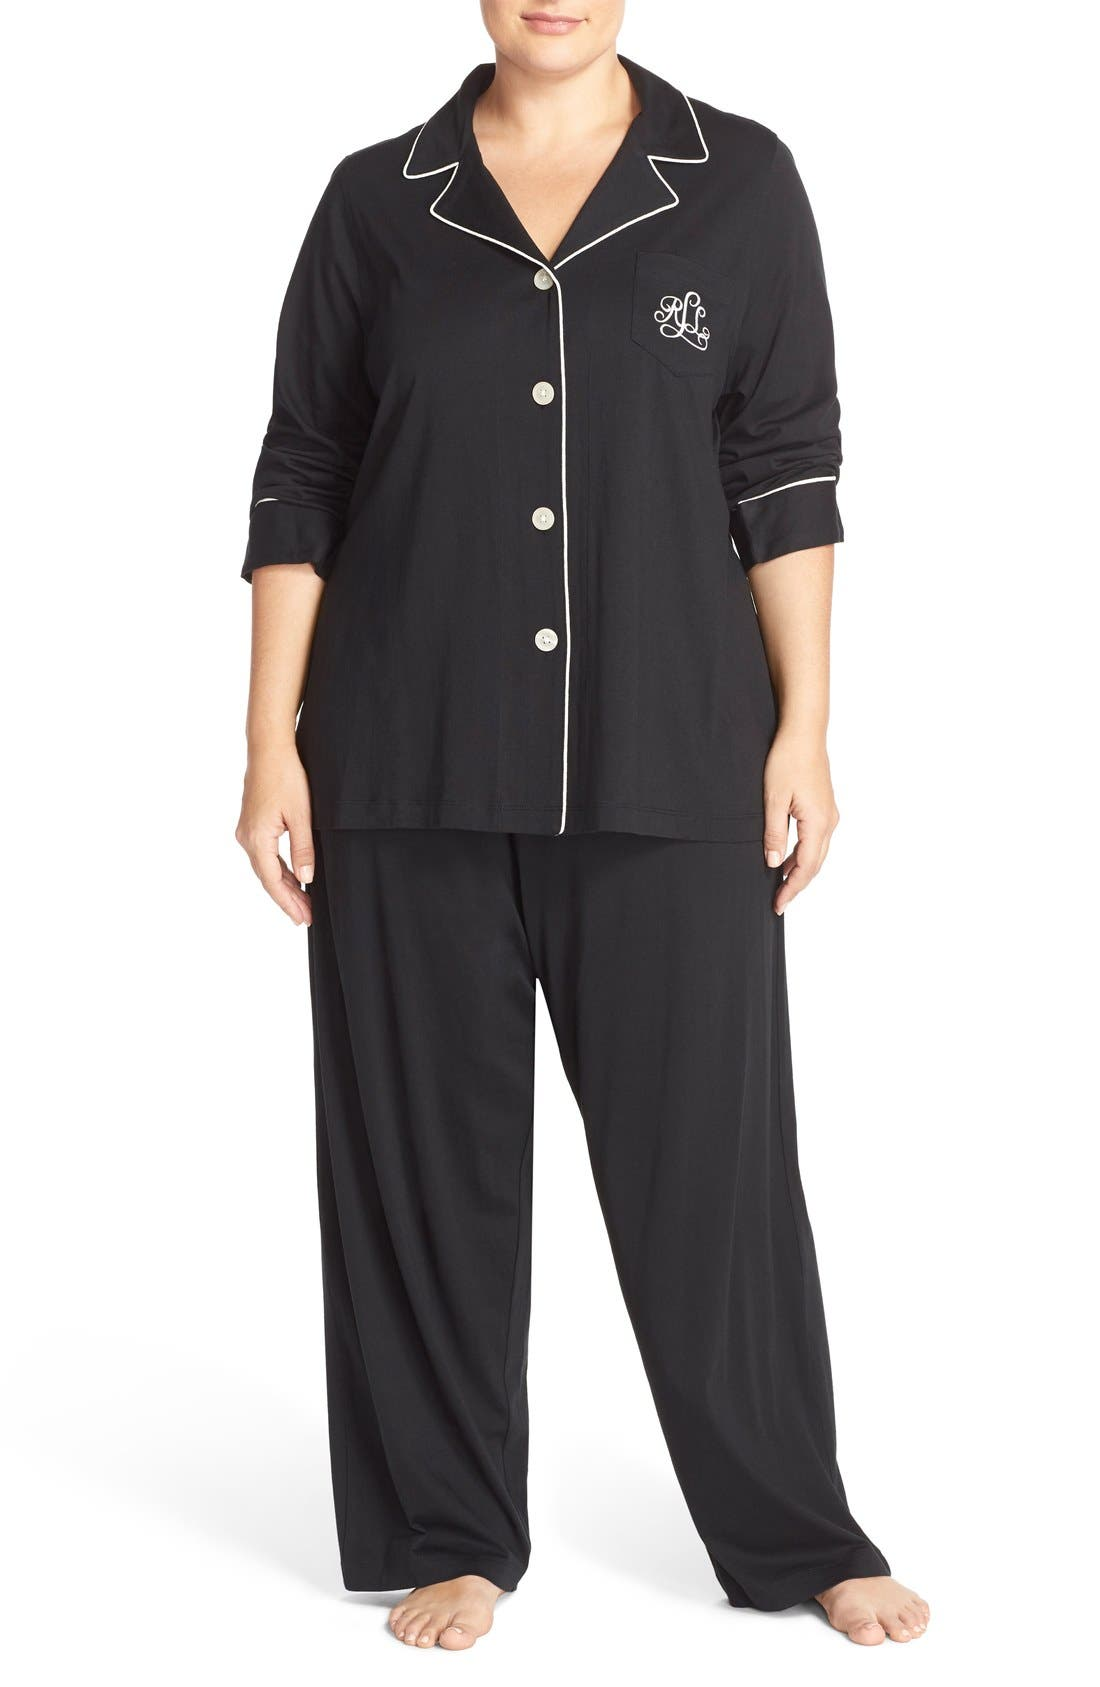 Knit Pajamas,                             Main thumbnail 1, color,                             Black